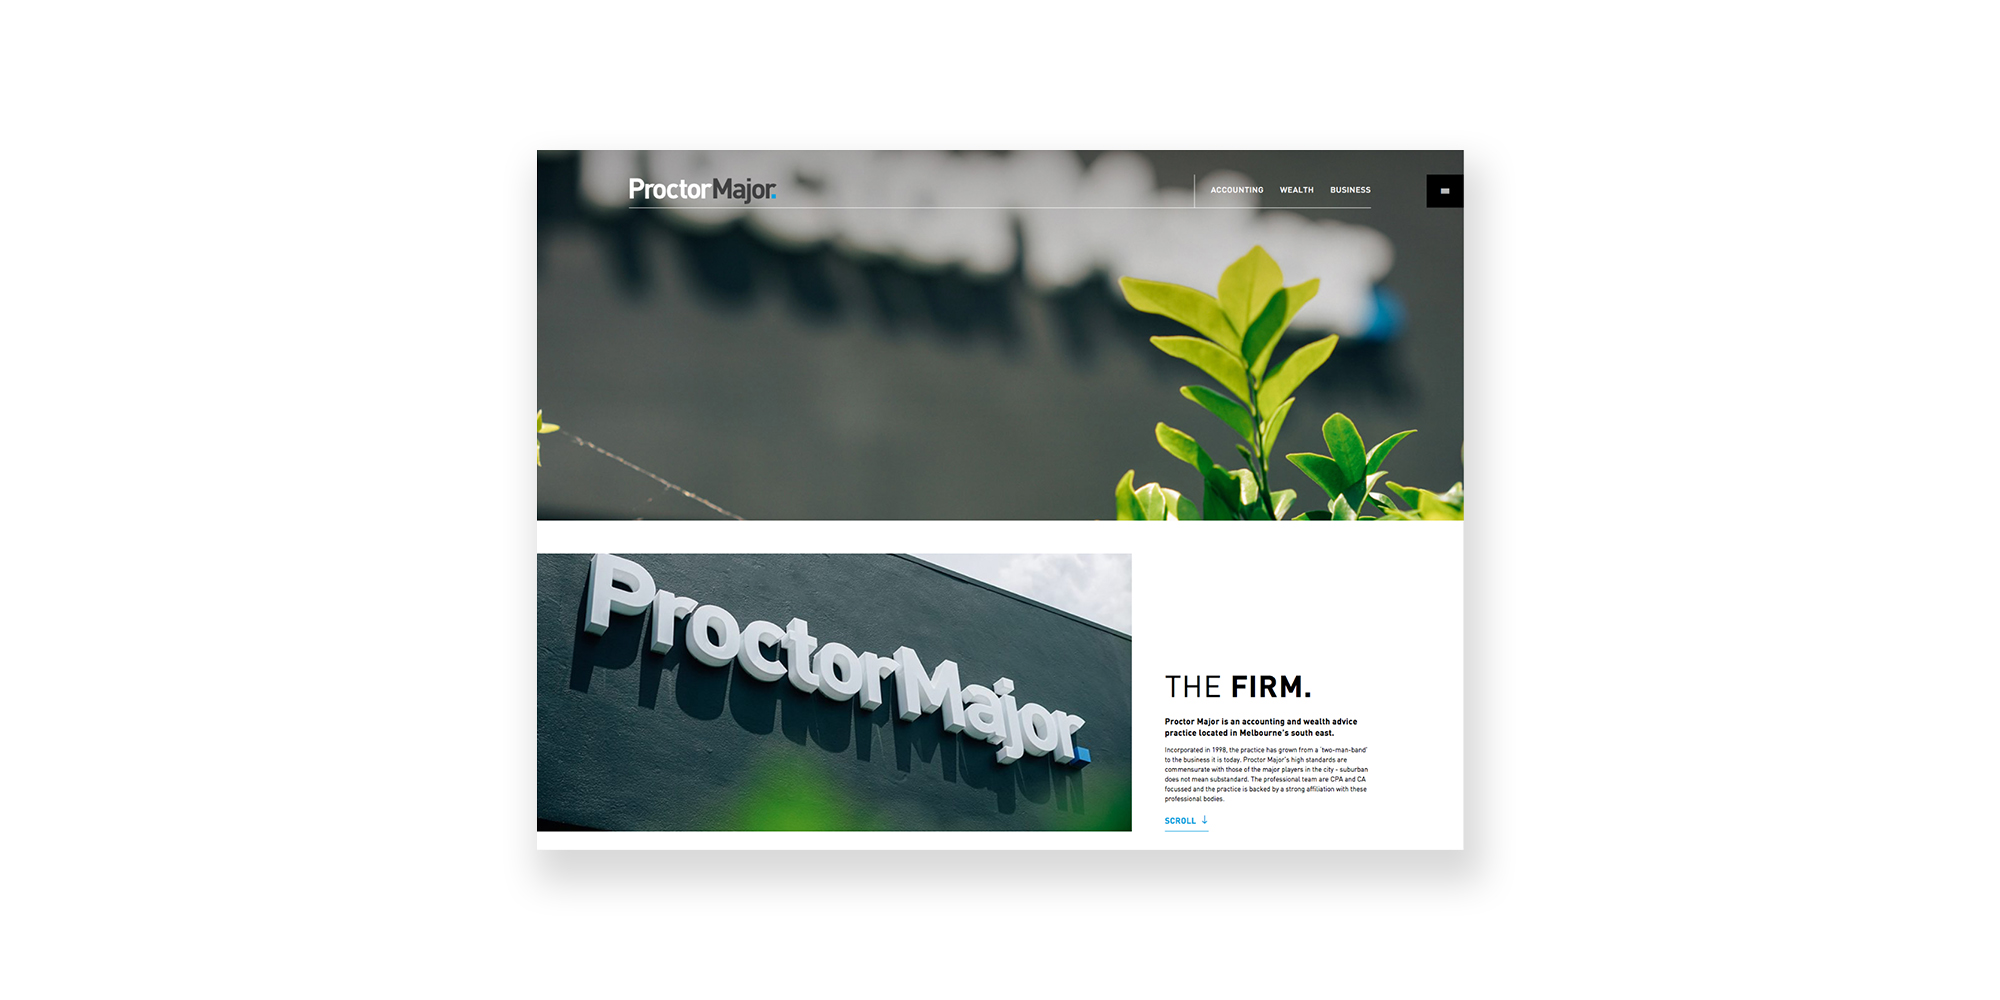 Proctor Major Website